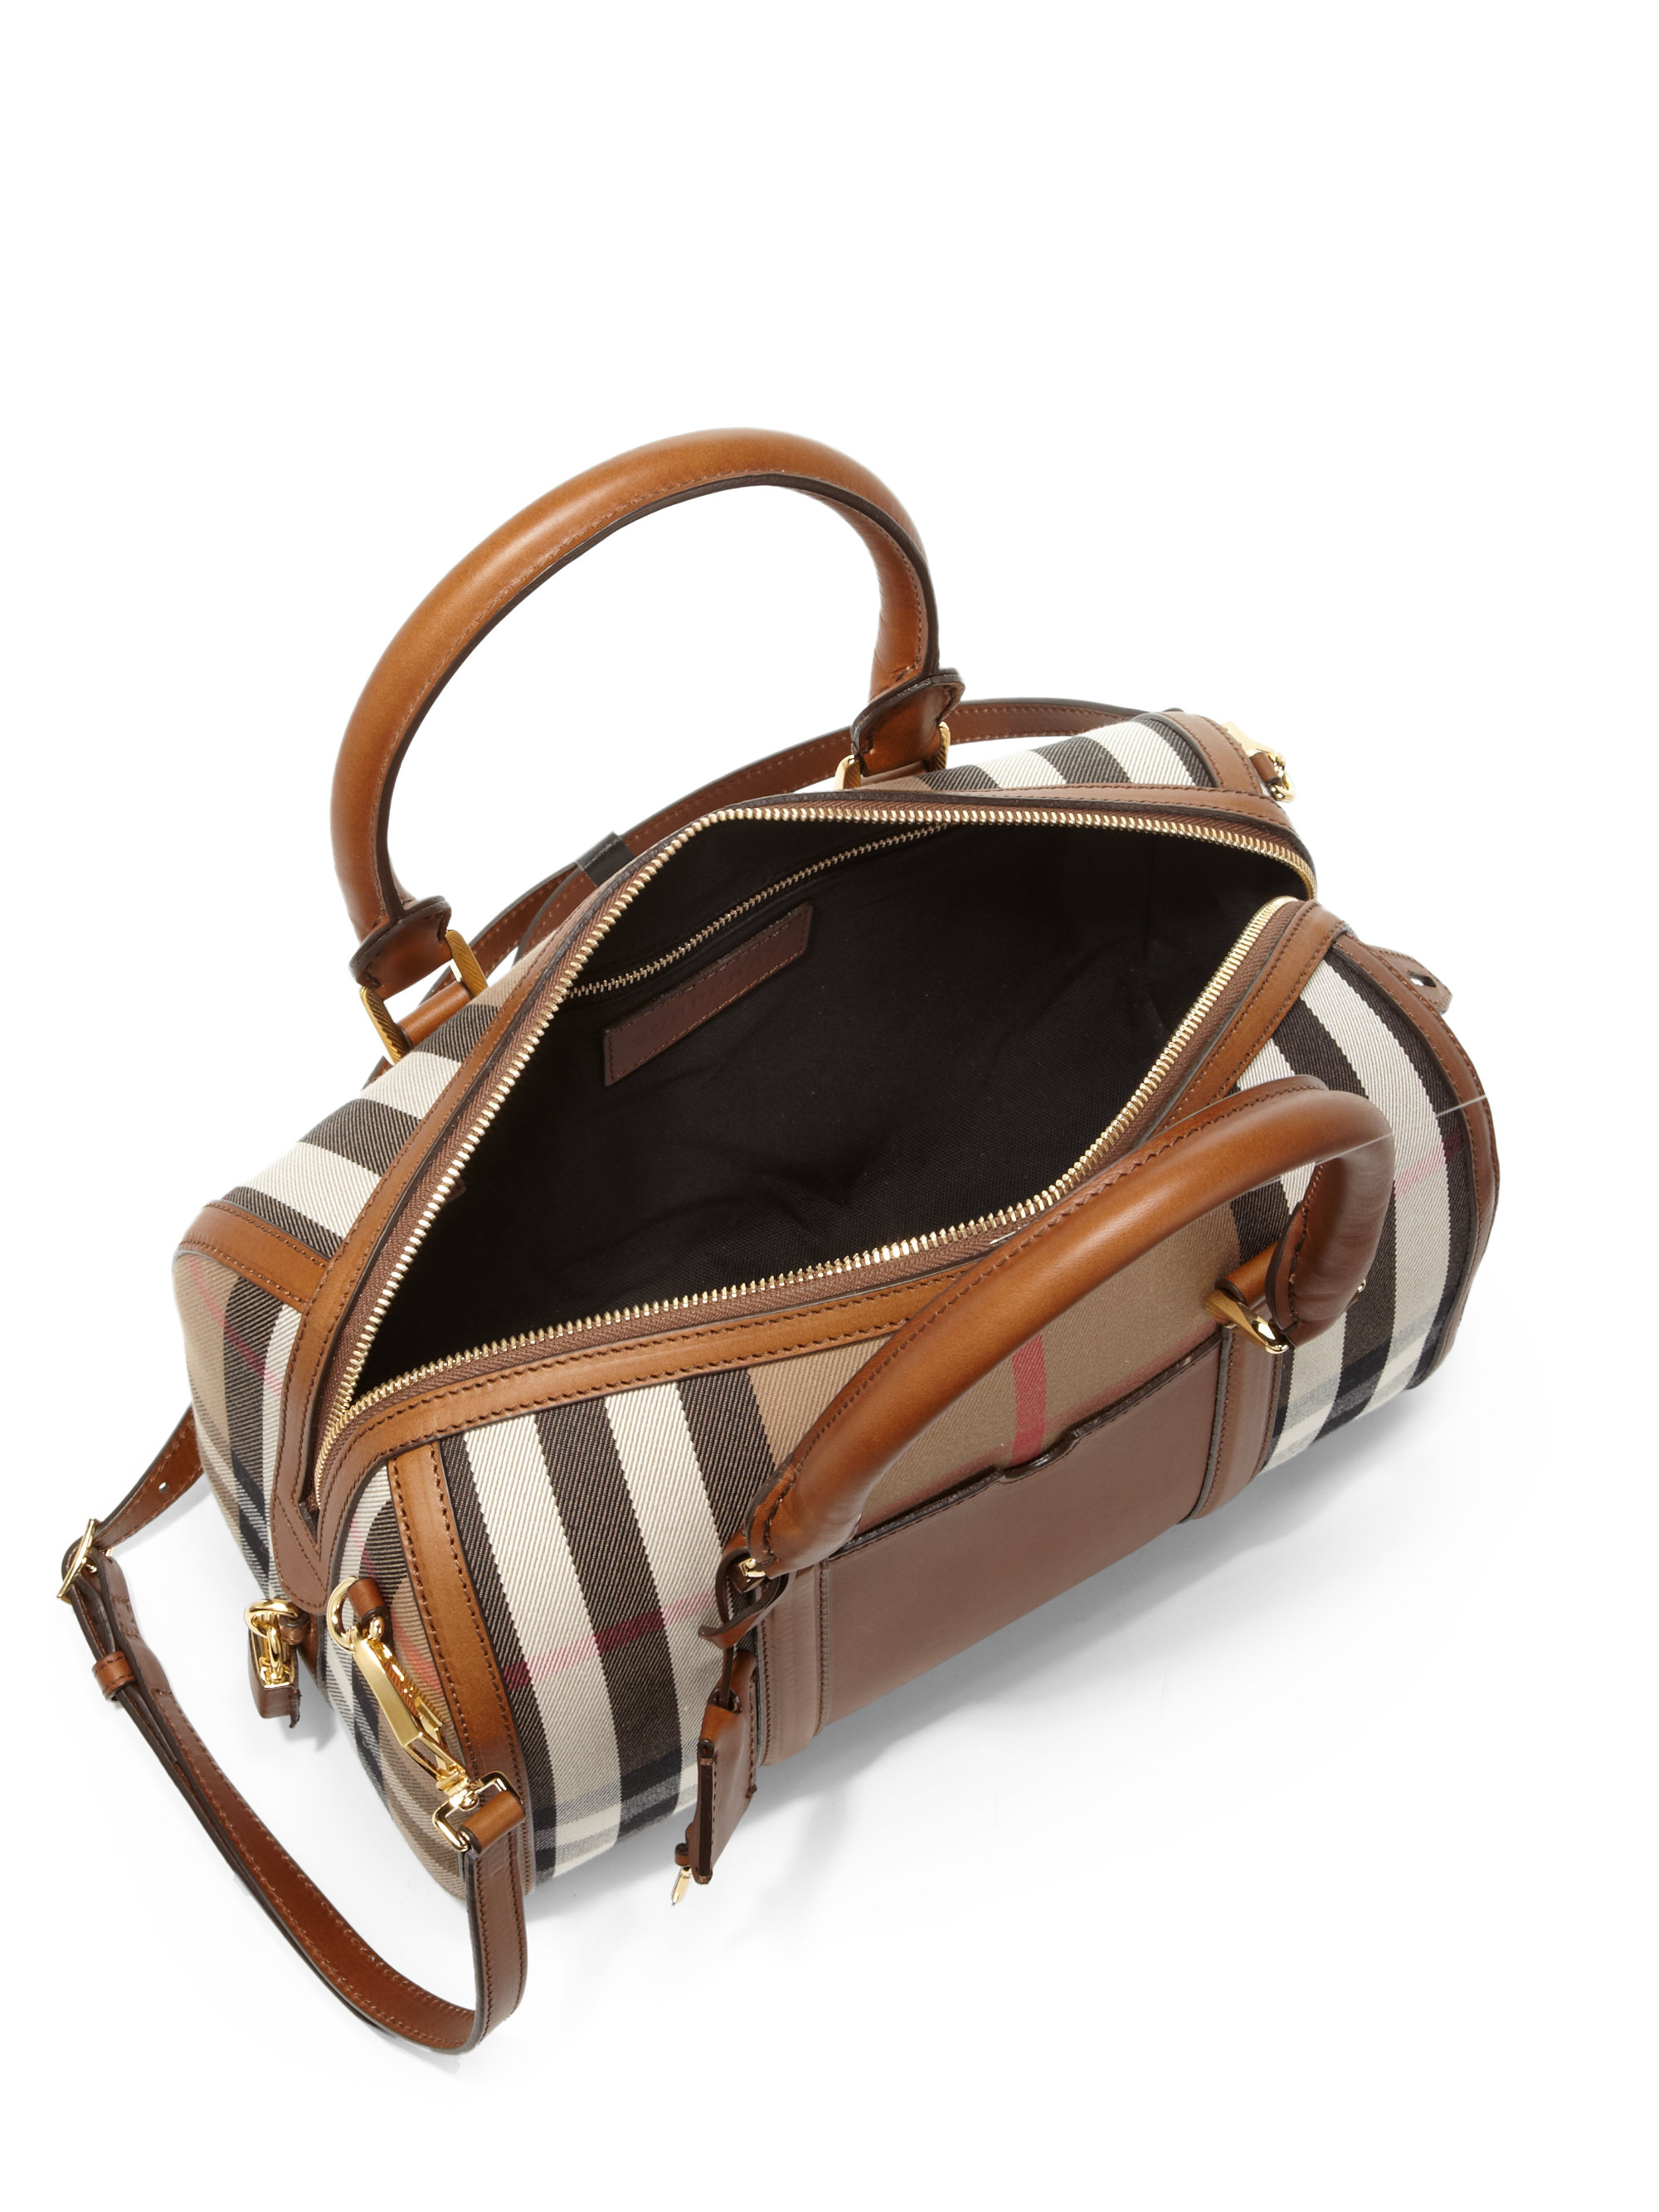 5f63eee0ff8a Lyst - Burberry Alchester Medium Mixed-Media Bowler Bag in Brown